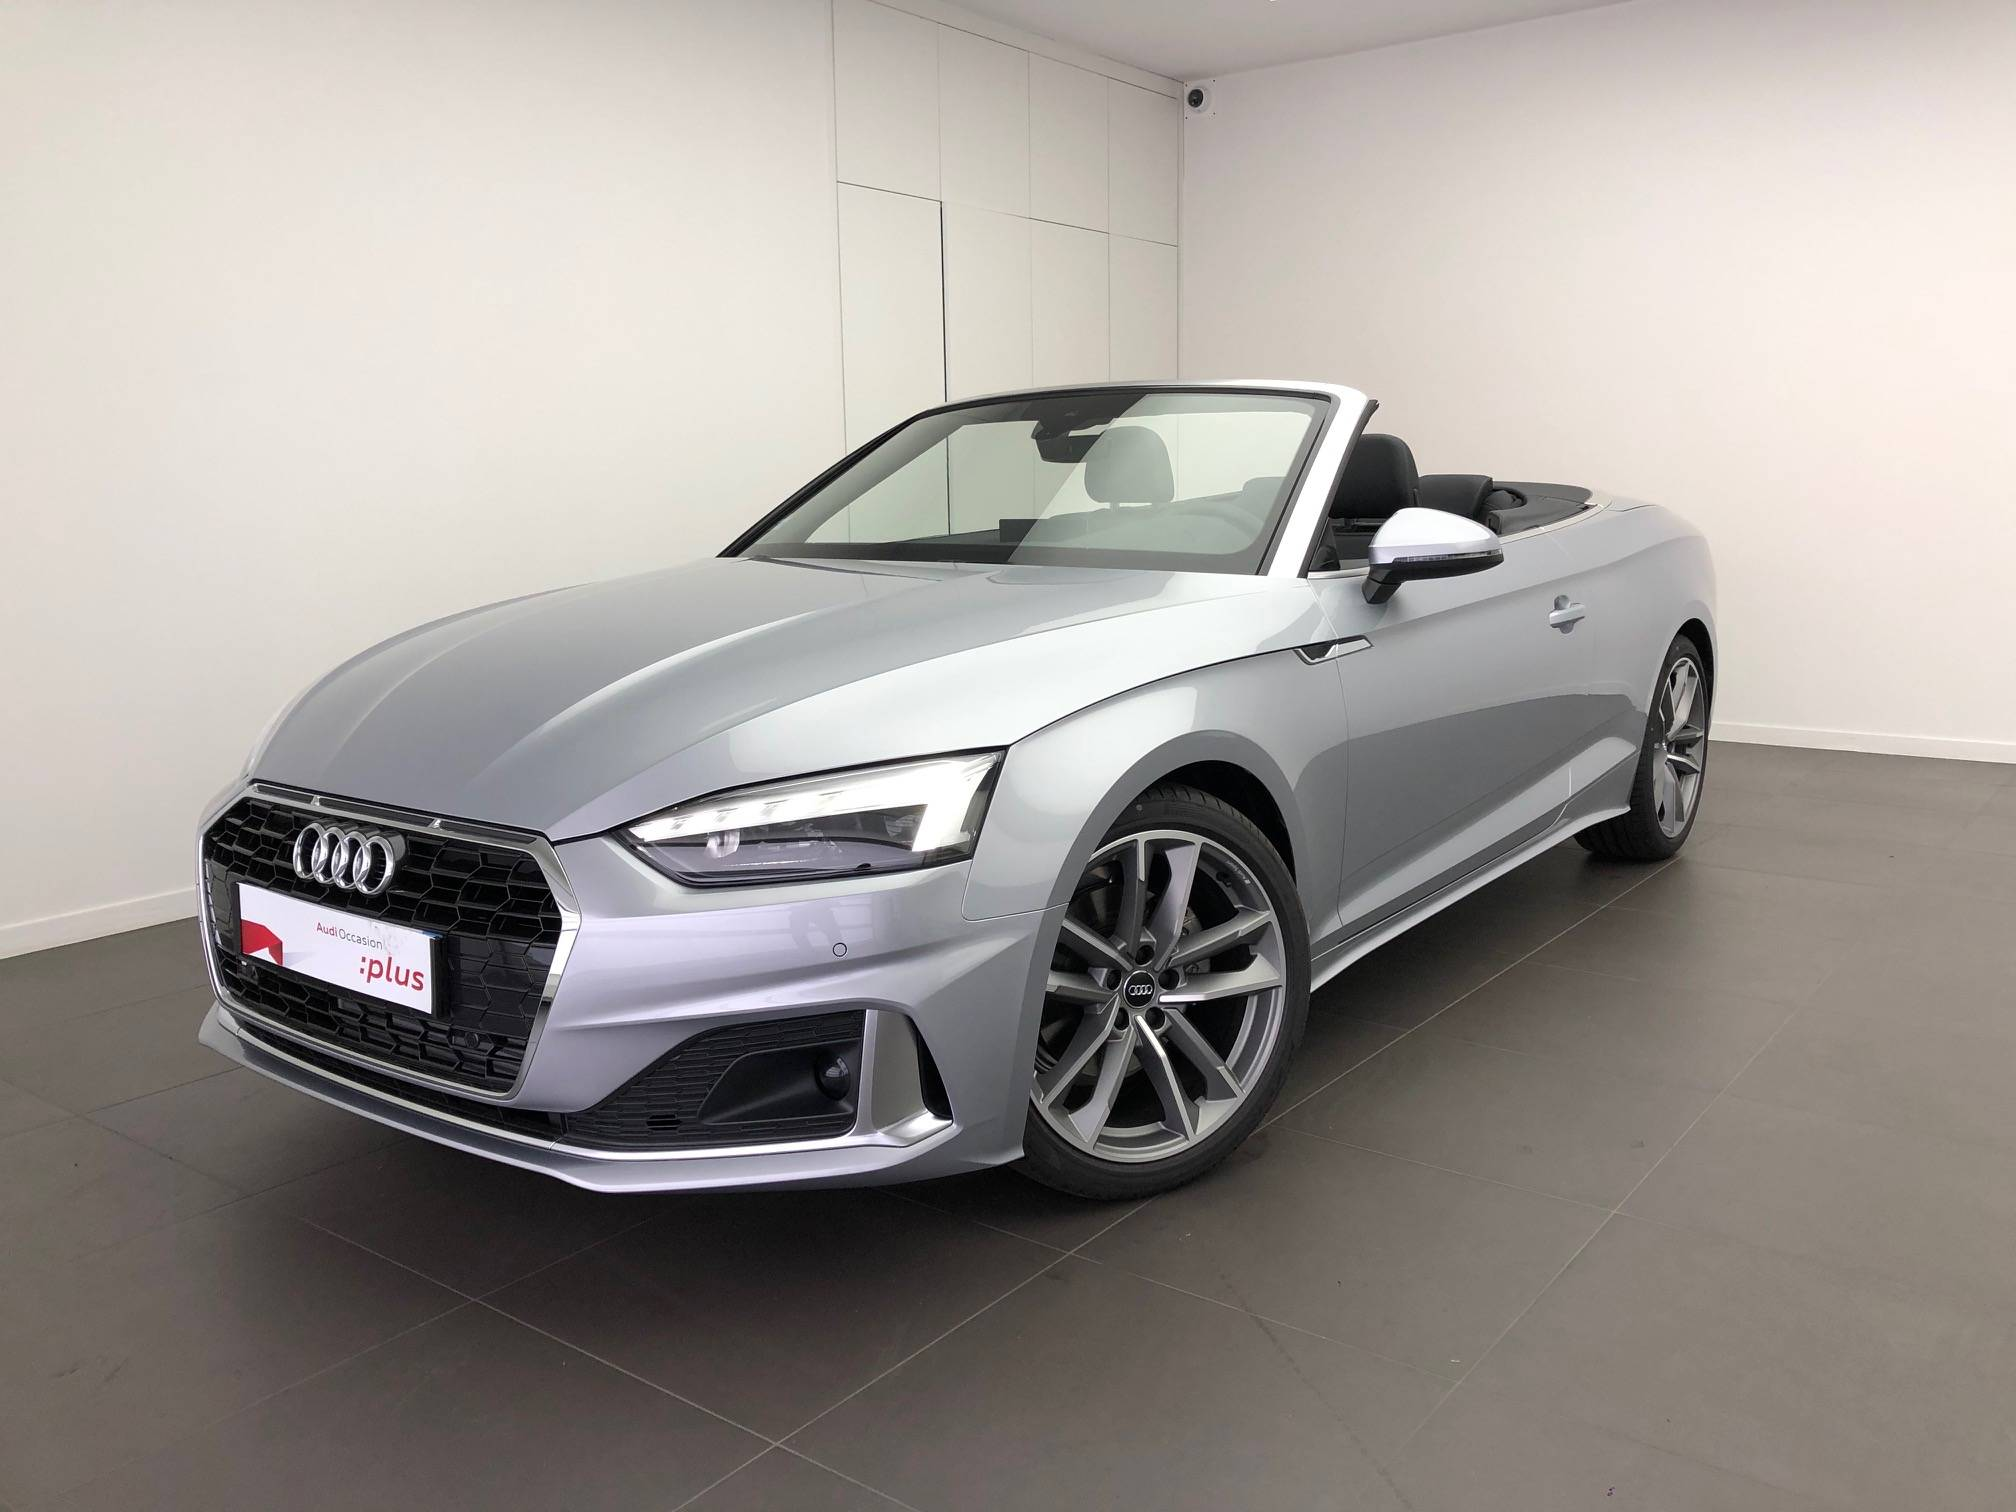 A5 Cabriolet 40 TFSI 190 S tronic 7